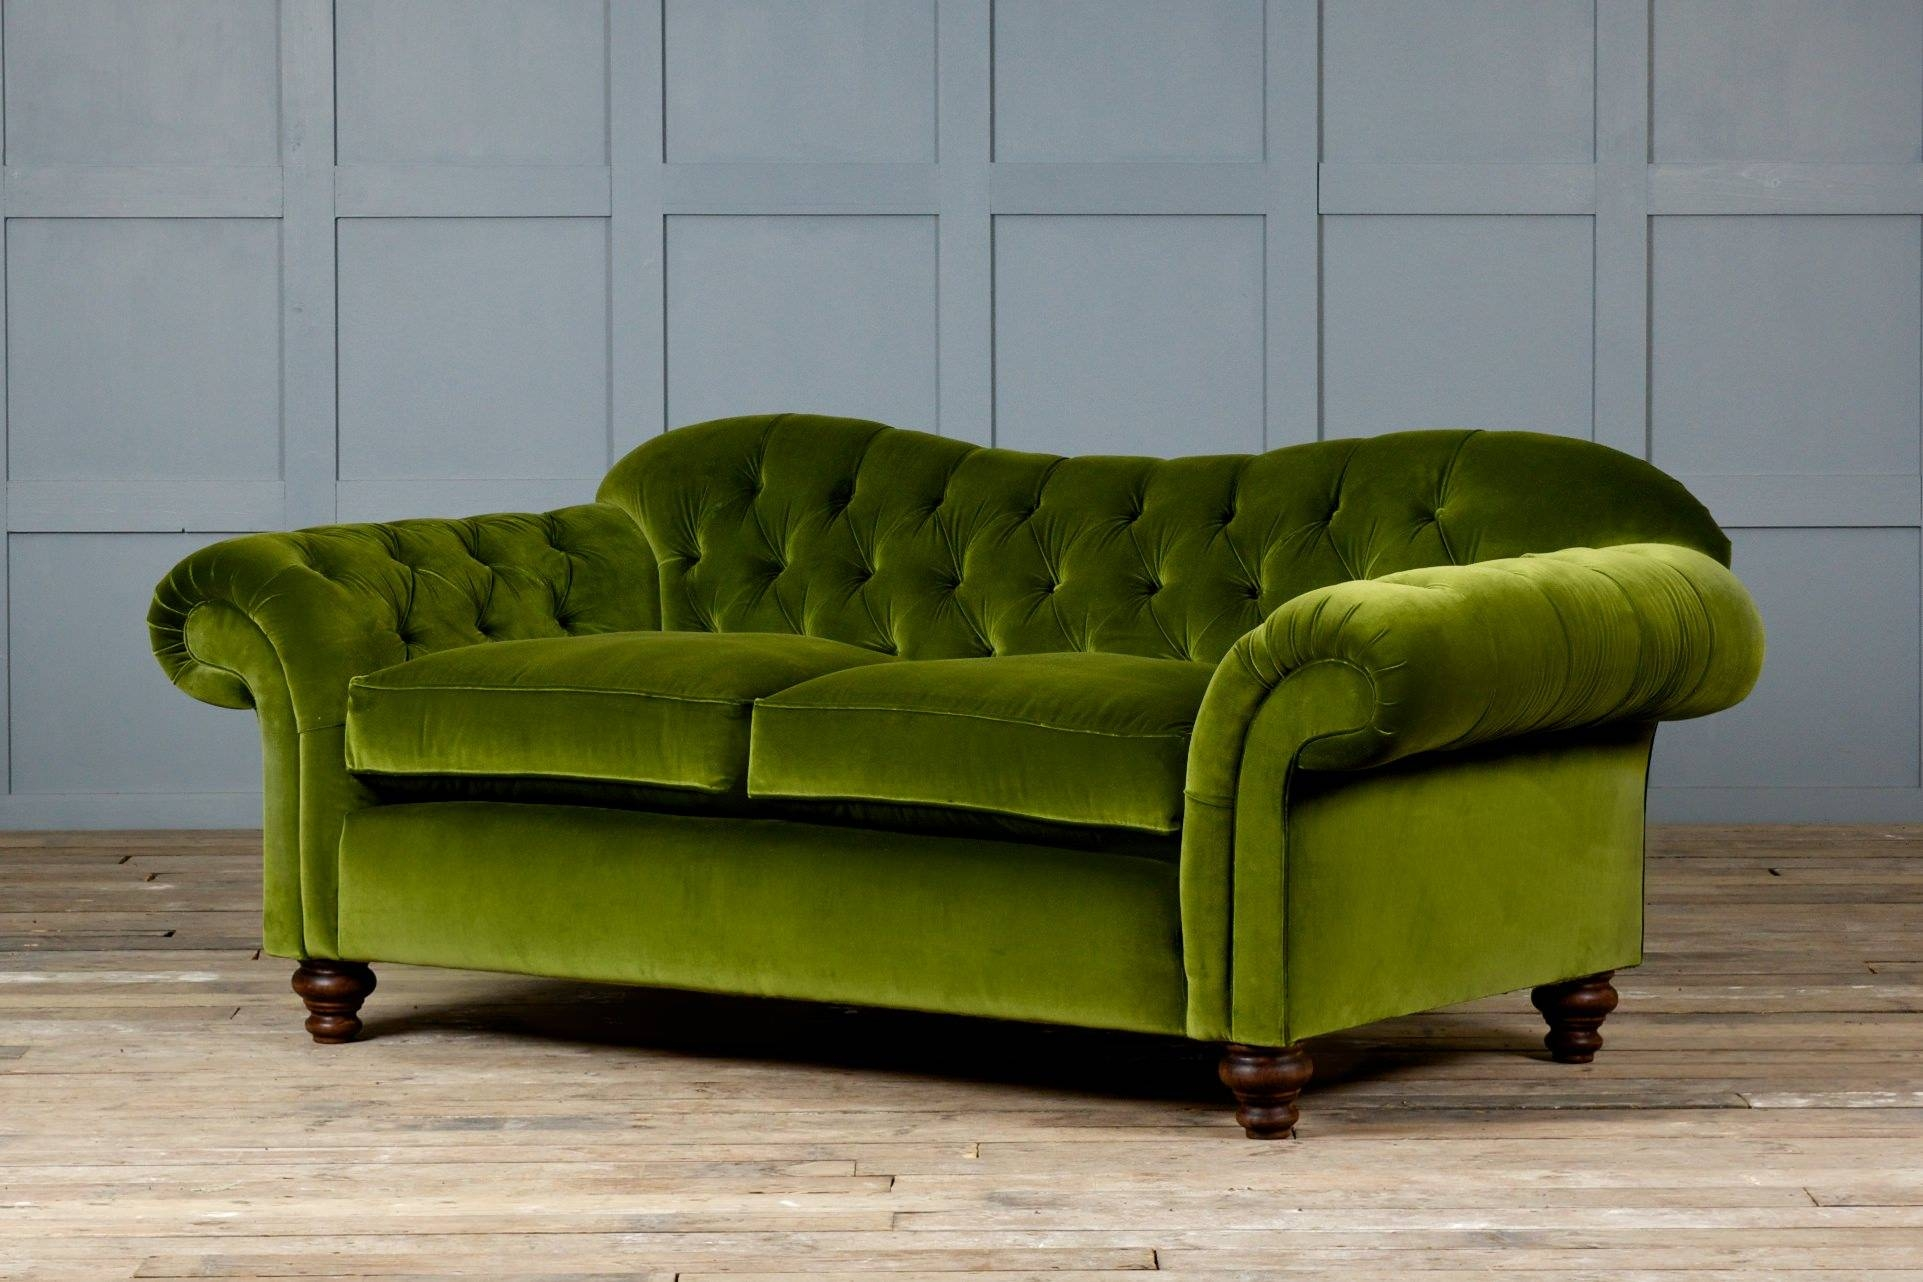 Sofas Center : Vintager Sofa Trend With Additional Room Ideas within Sofa Trend (Image 19 of 25)